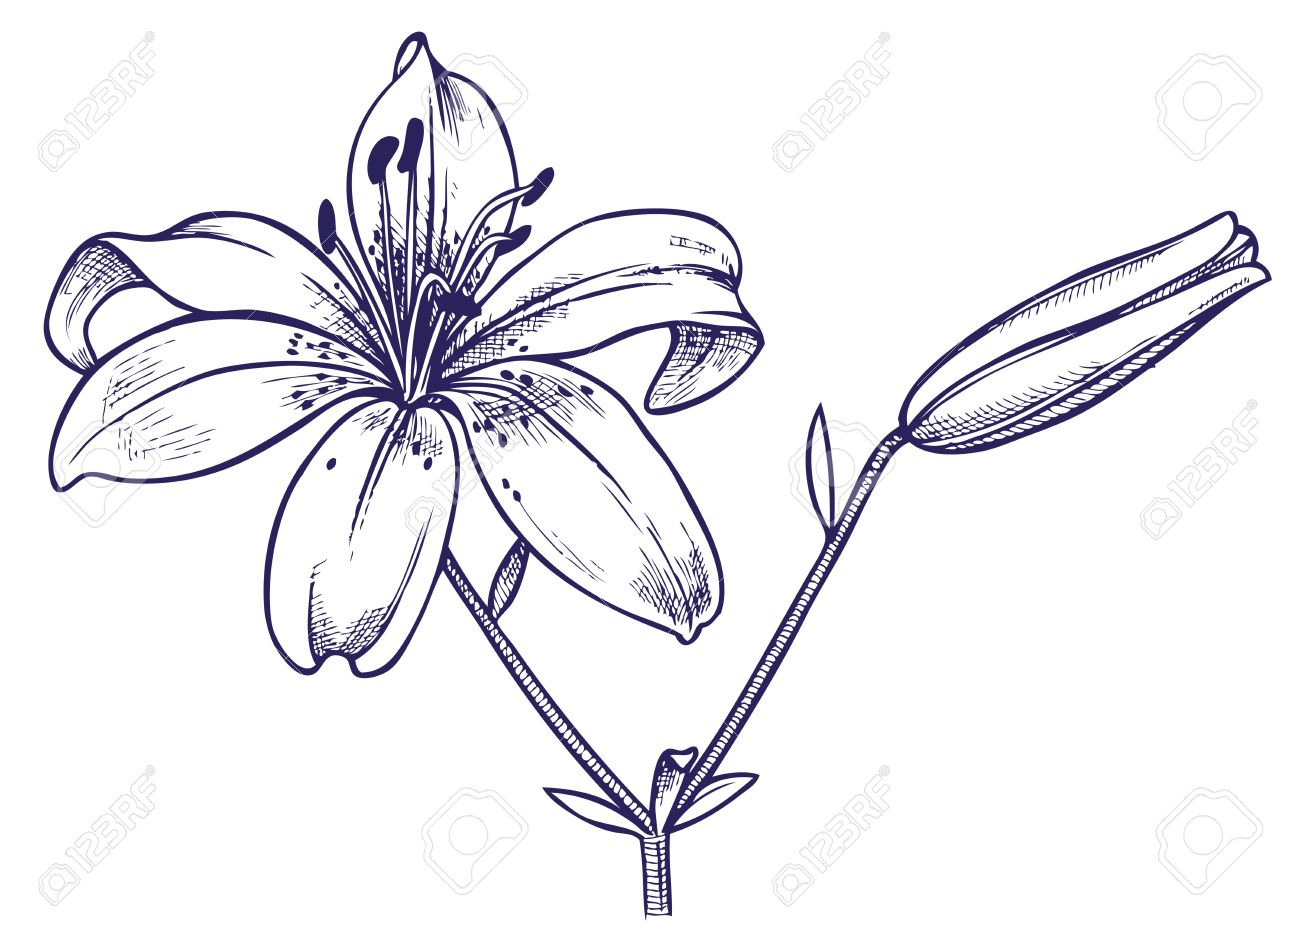 1300x941 Hand Drawing With Image Of Open And Closed Bud Lily Royalty Free